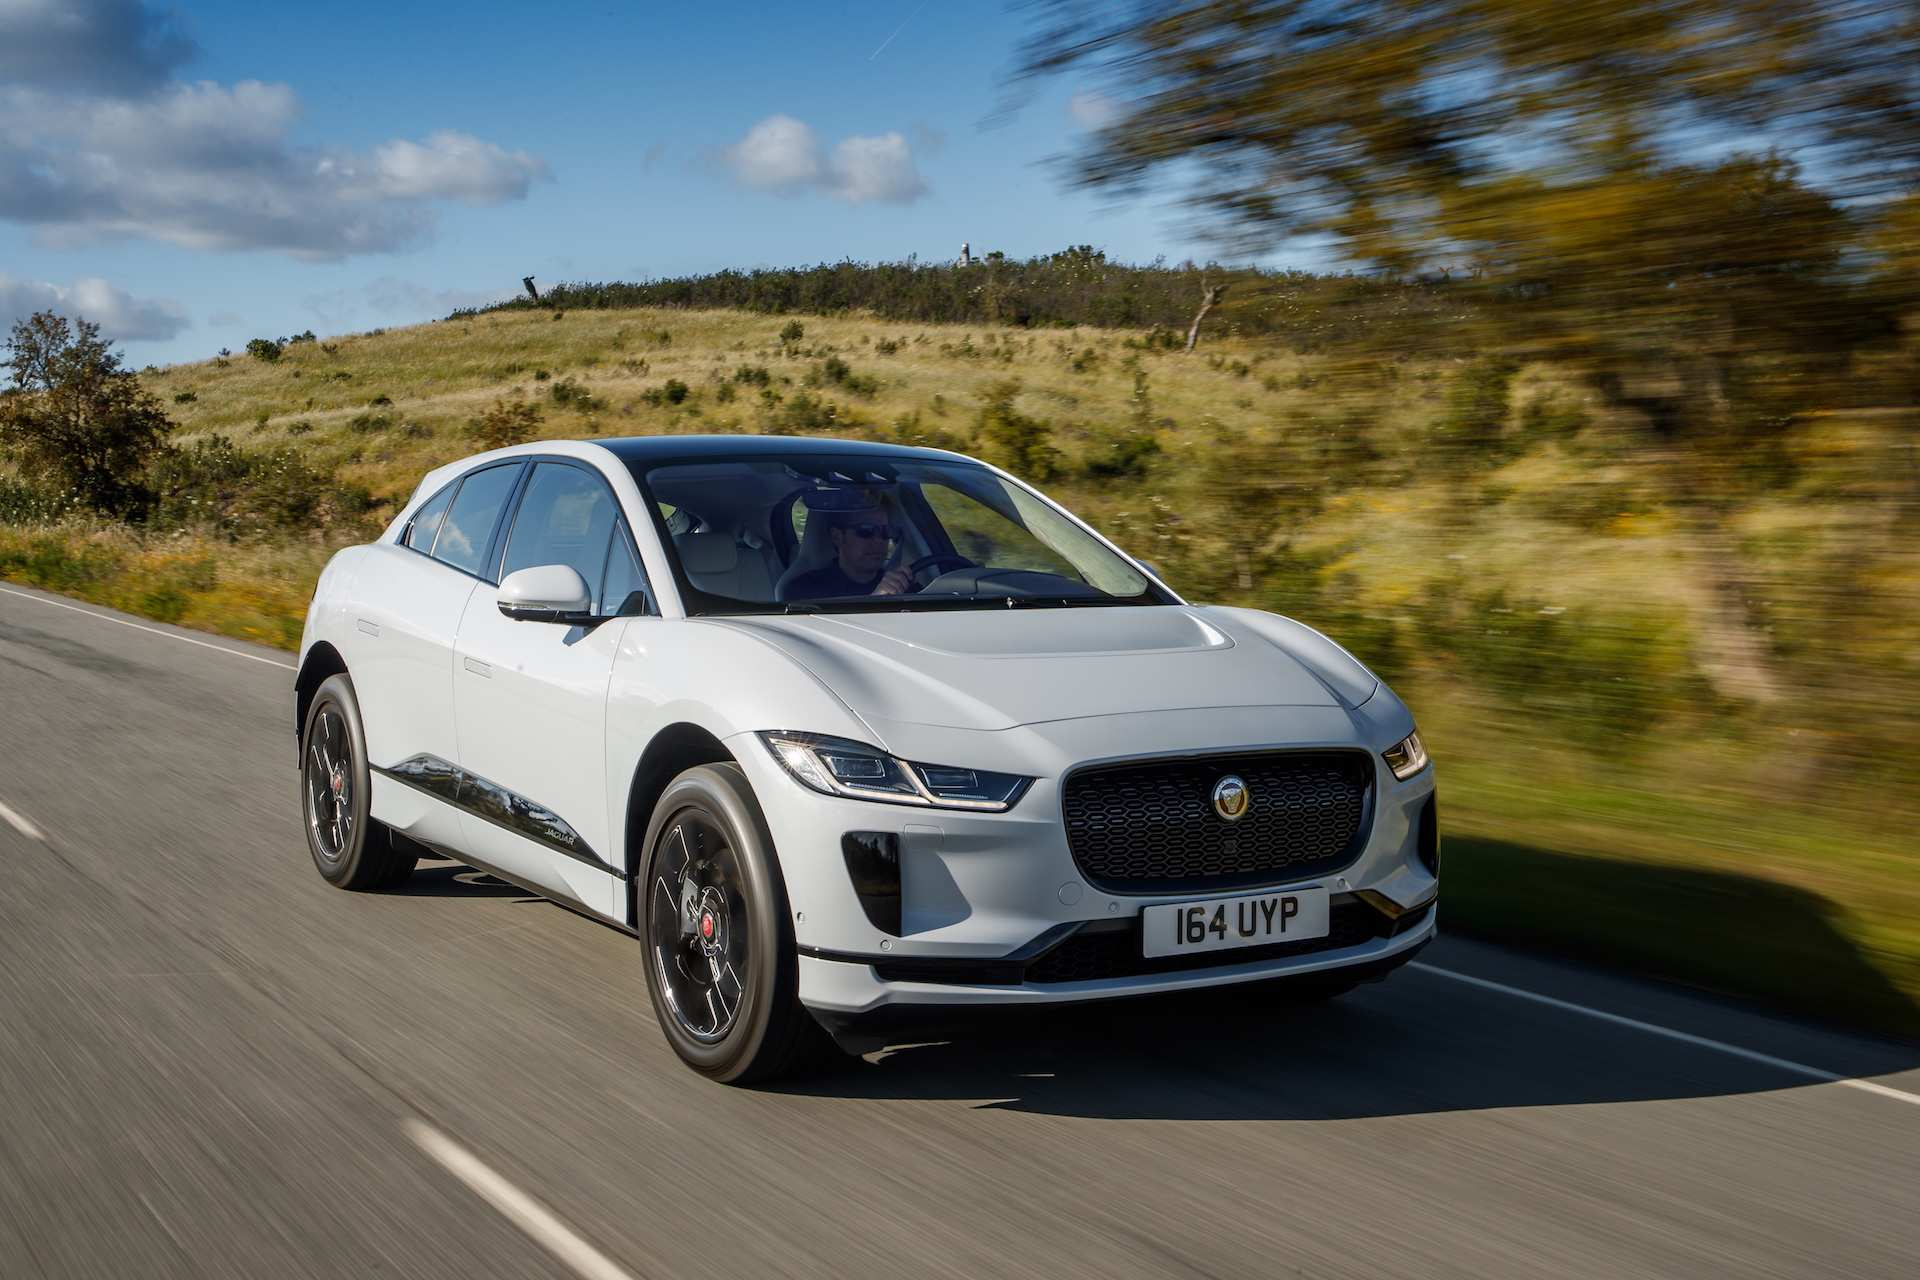 50 Concept of 2019 Jaguar I Pace Electric Wallpaper by 2019 Jaguar I Pace Electric